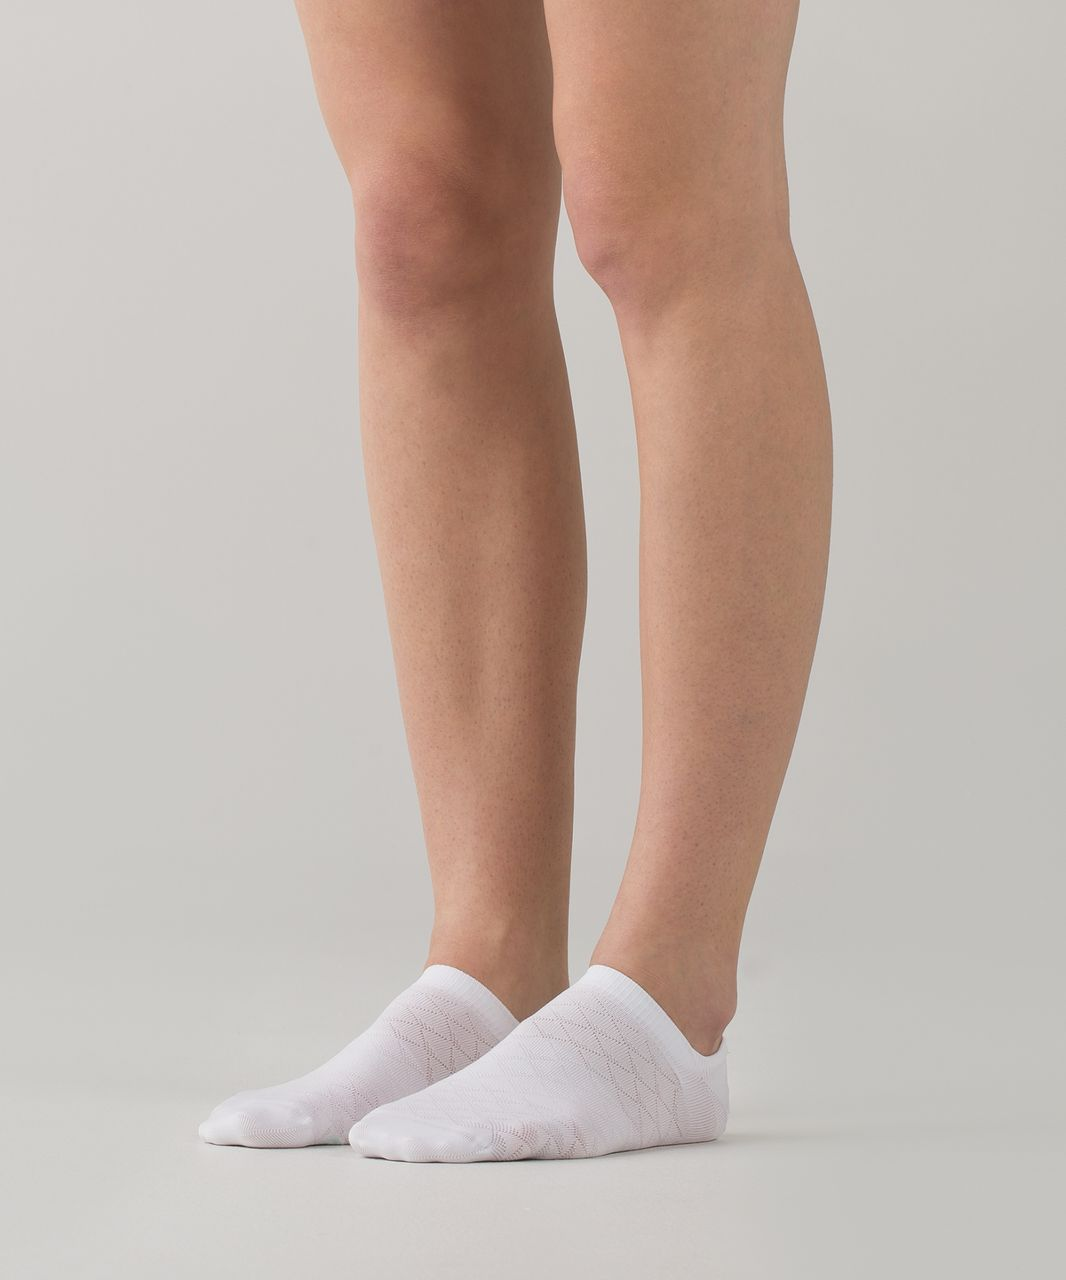 Lululemon Play All Day Sock - Lilac / Sea Mist / Dragonfly